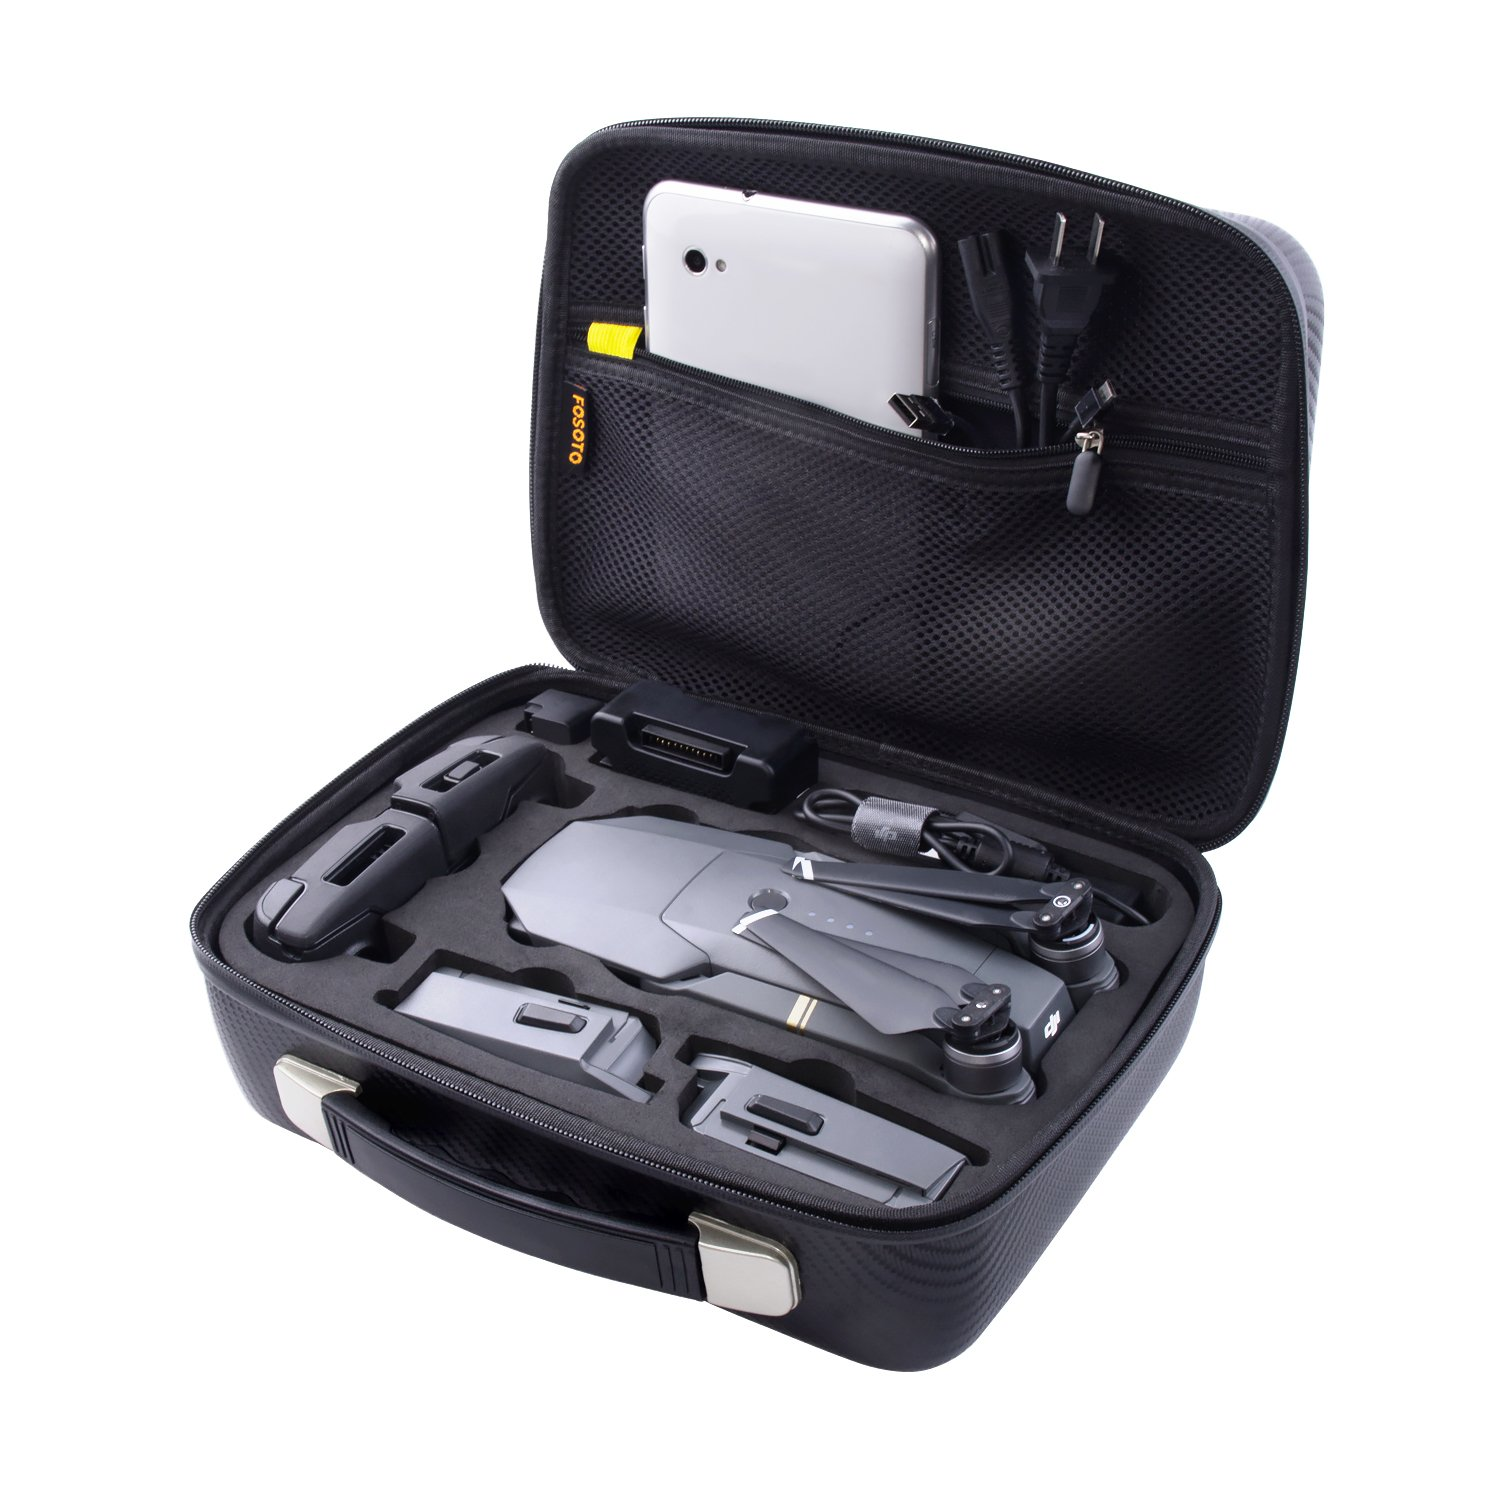 Waterproof Carrying Case Compatible DJI Mavic Pro - Protect DJI Mavic Pro Foldable Drone Combo Accessories Such as Remote Control, Extra Batteries More FOSOTO MP-01